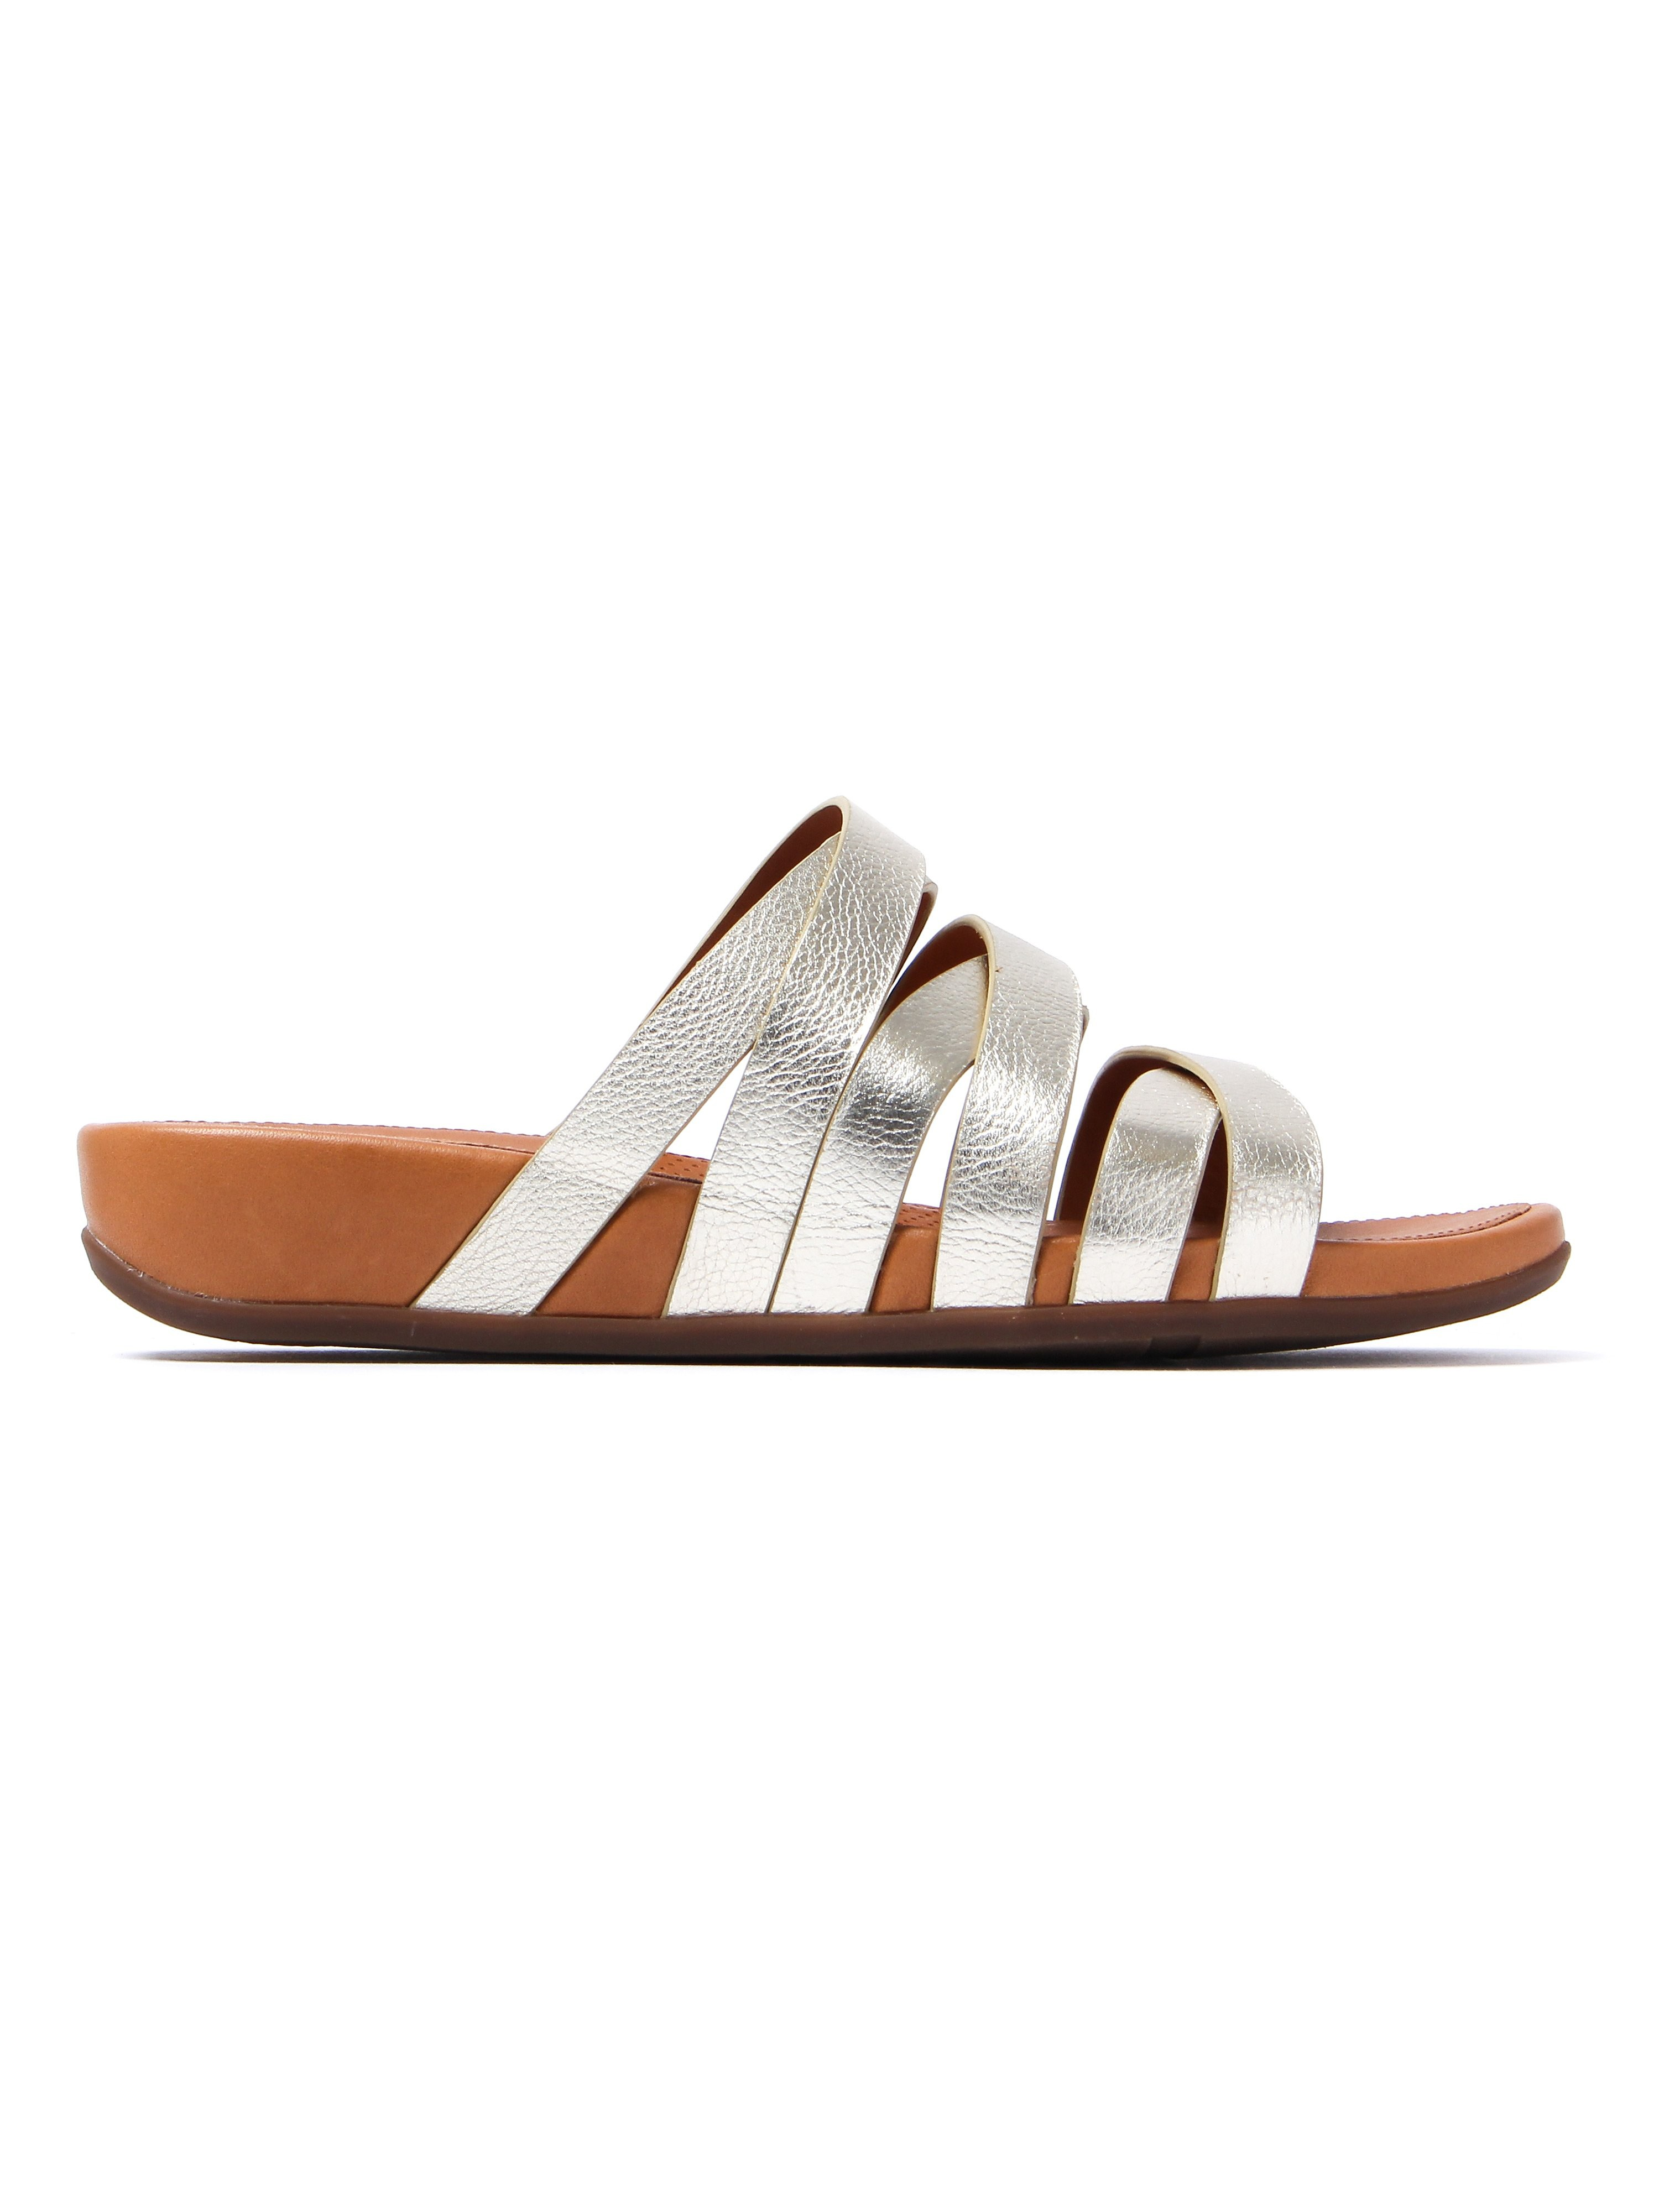 FitFlop Women's Lumy Leather Slide Sandals - Pale Gold